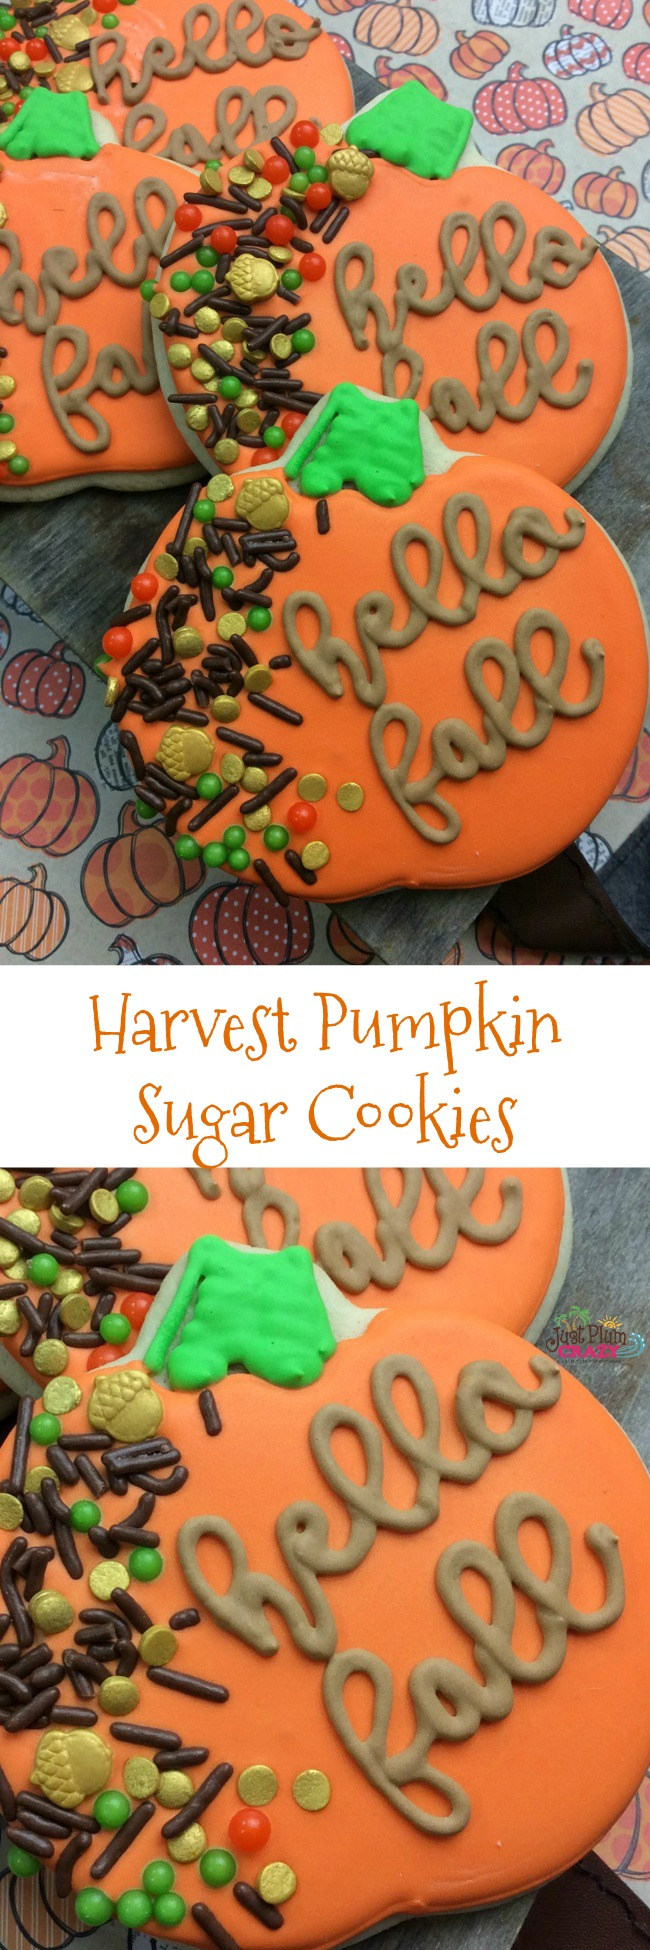 Beautifully decorated pumpkin shaped sugar cookies that will make an impact on the dessert table!